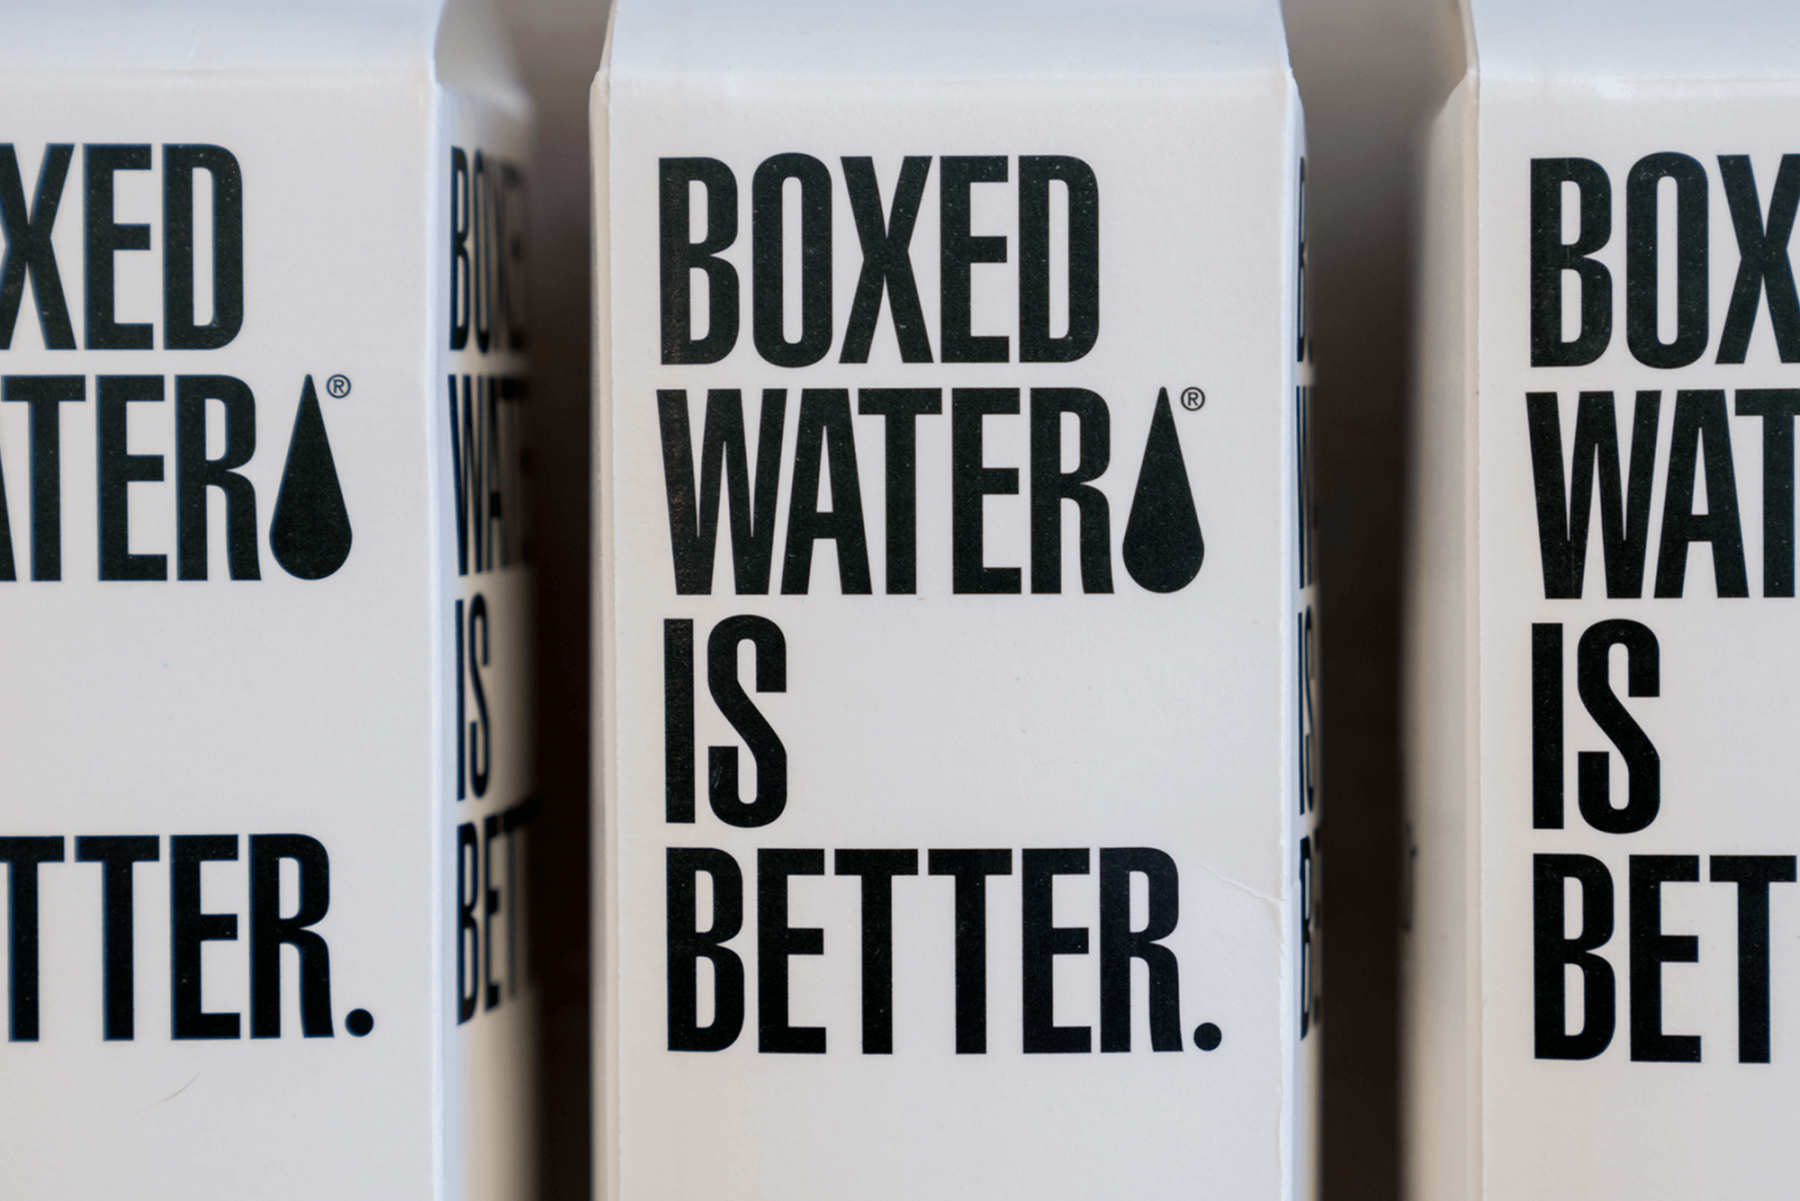 Boxed Water cartons in row